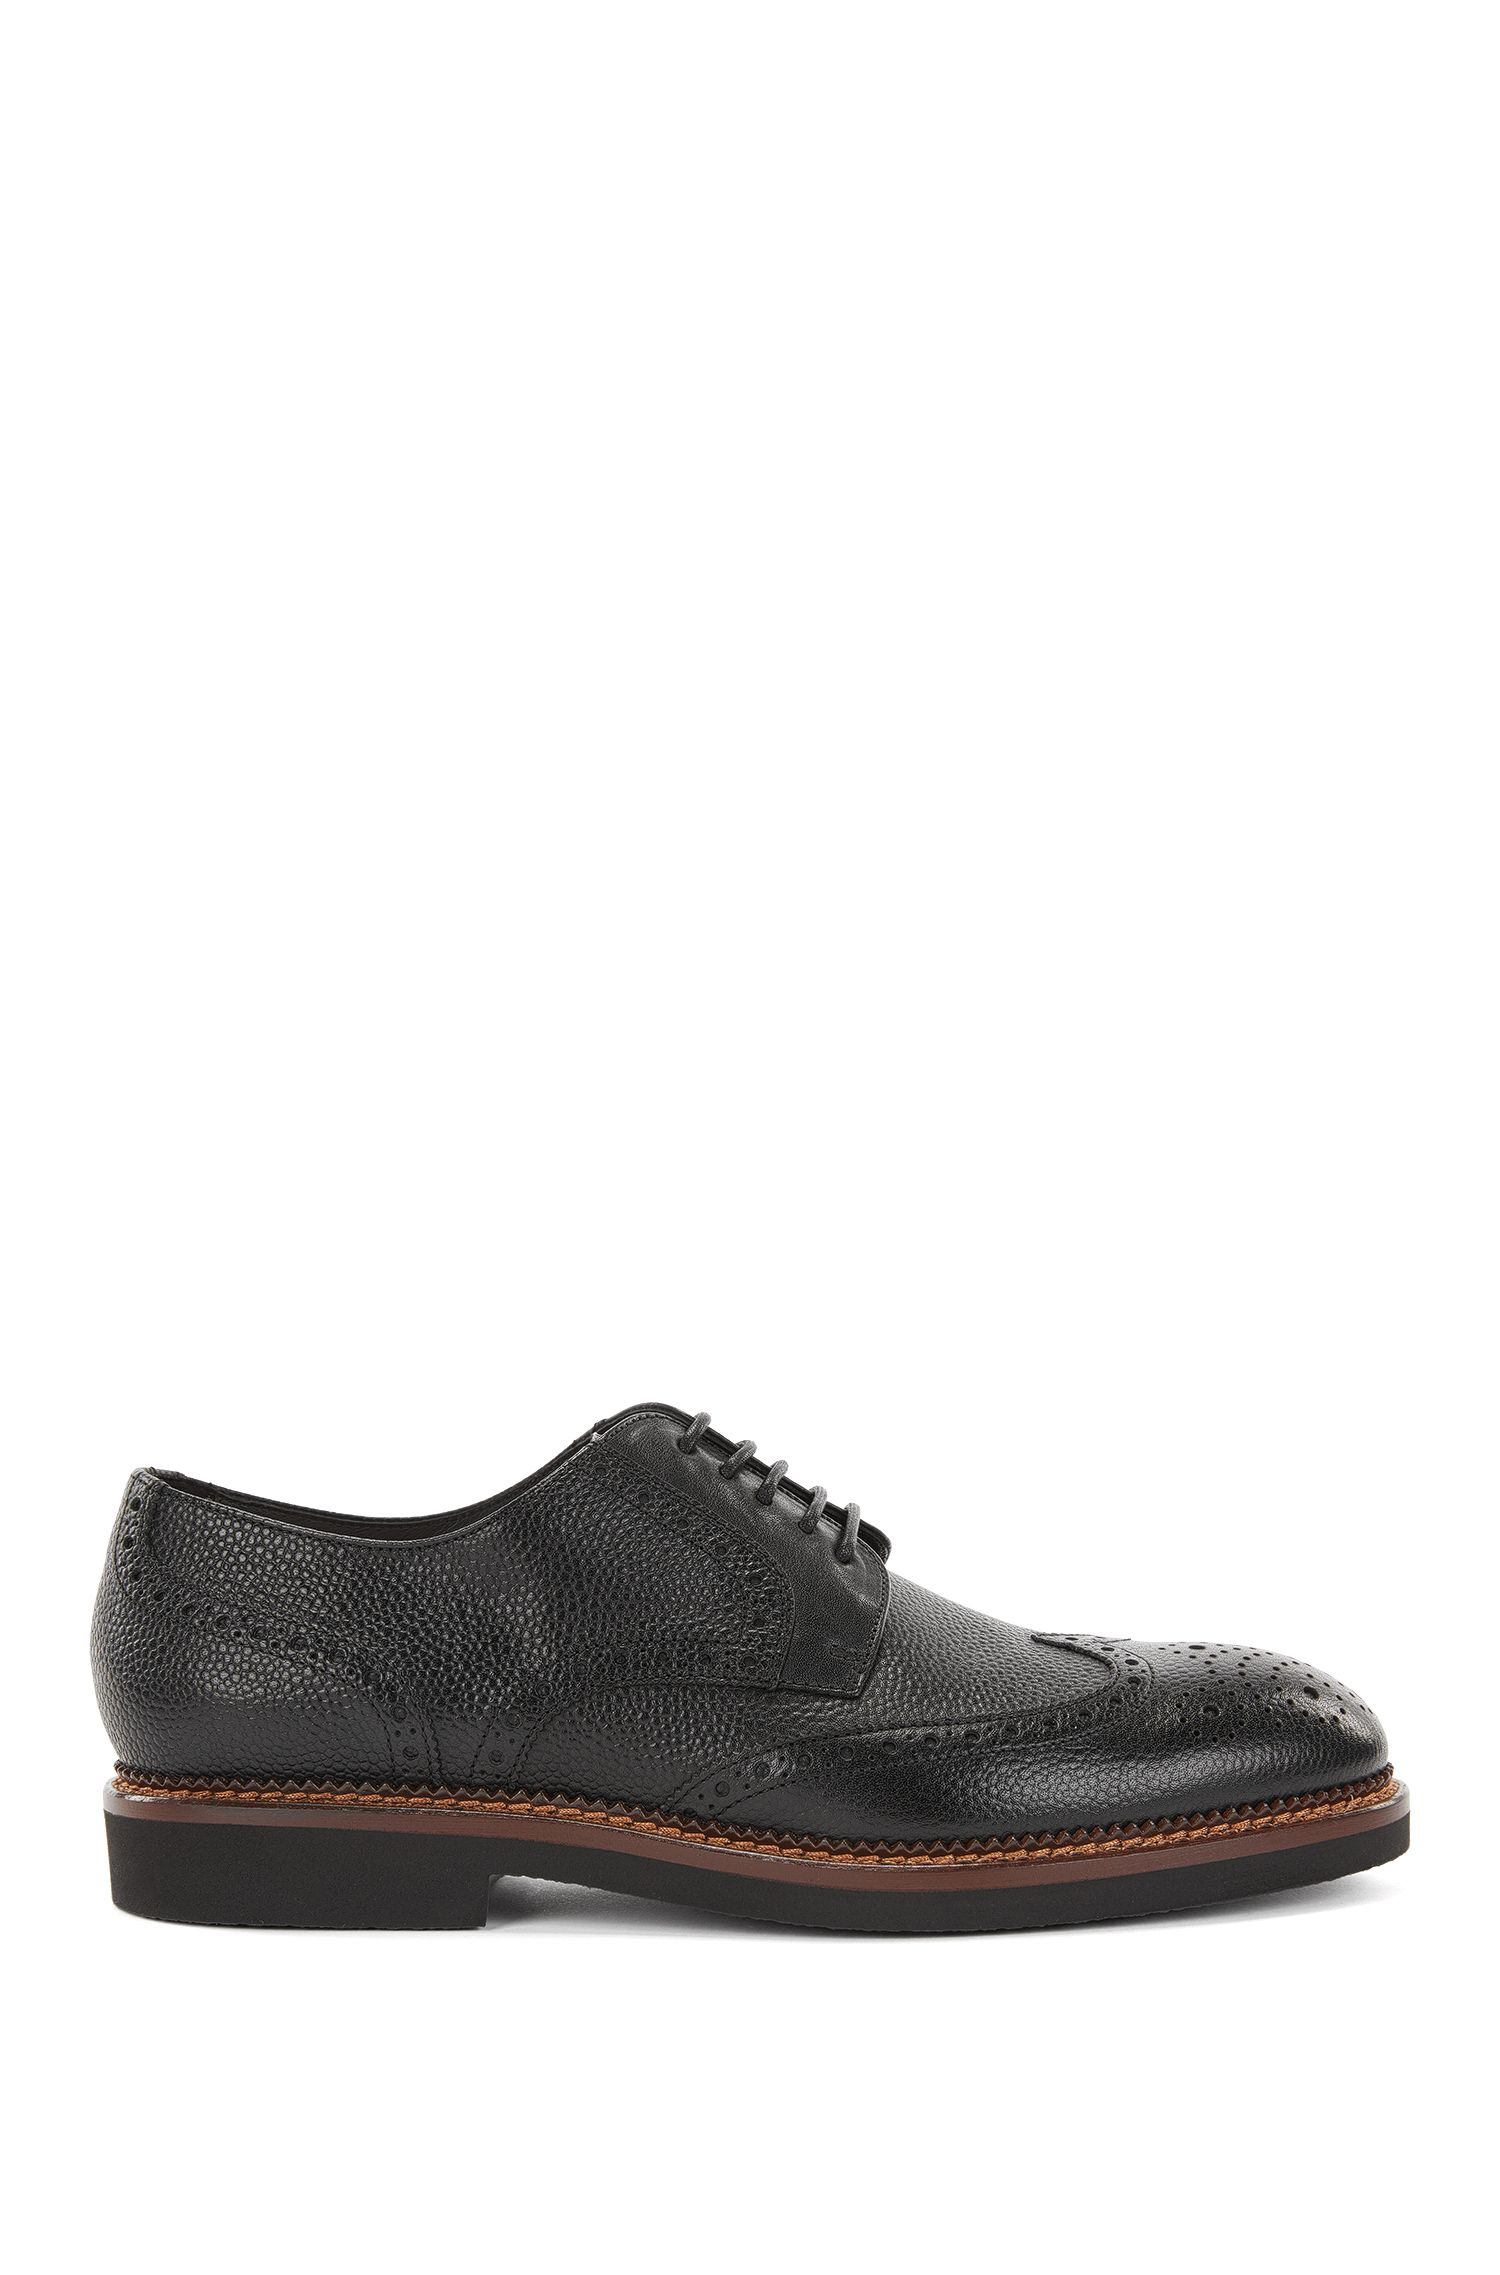 Lace-up brogue shoes in grained leather